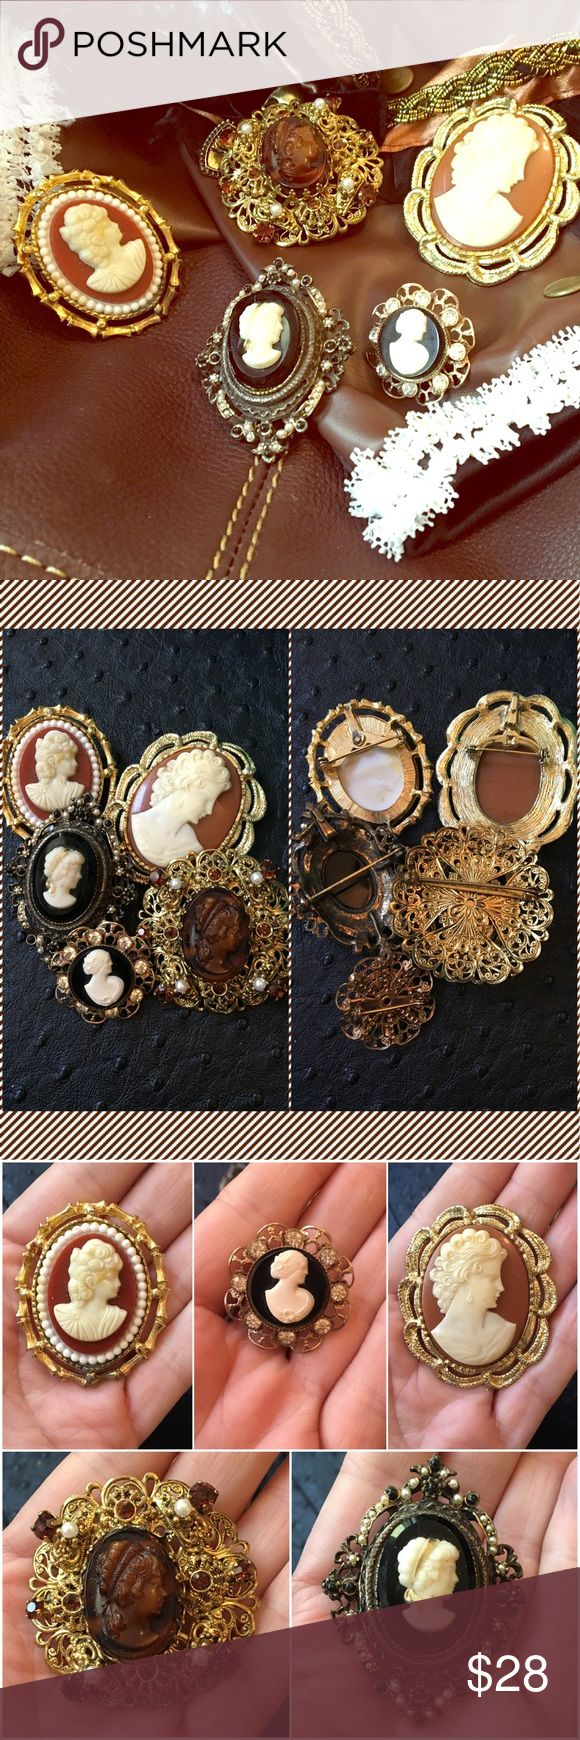 🙃 5 Vintage CAMEOS Brooch Pendant STEAMPUNK STYLE 🙃 PRICE DROP - was $28 🙃                           FIVE vintage mid-century Cameo brooches for your steampunk look or mixed media projects! These are costume jewelry made of metal, glass rhinestones, faux pearls. The large black cameo seems to be glass and porcelain - the other are plastic. All are brooches. Two cameos have bales so that they can also be worn as pendants. None have any damage or missing components except a third cameo had…